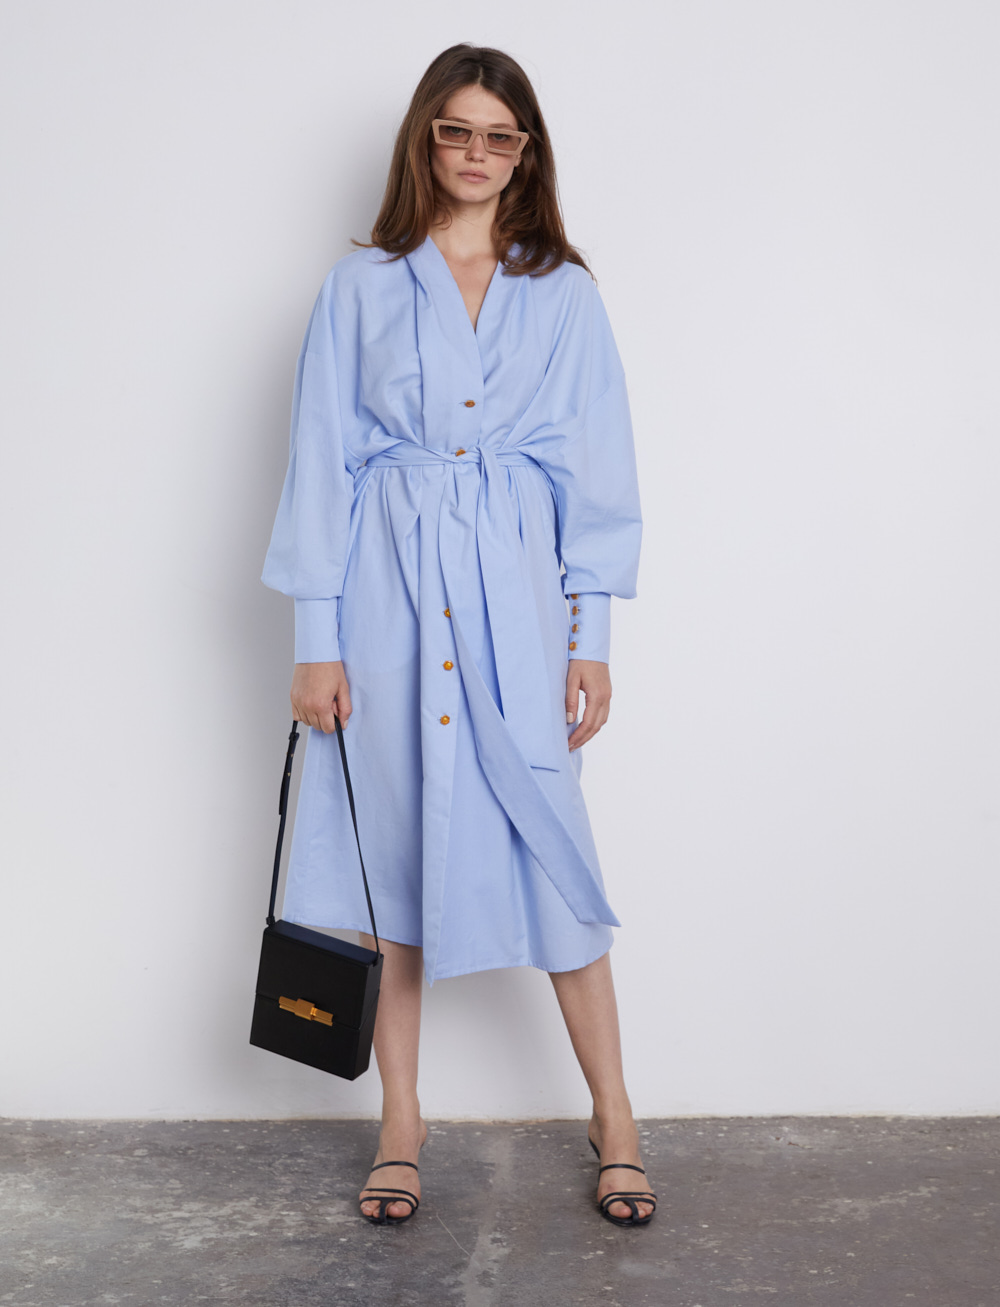 Tamino Dress by Manurí on curated-crowd.com